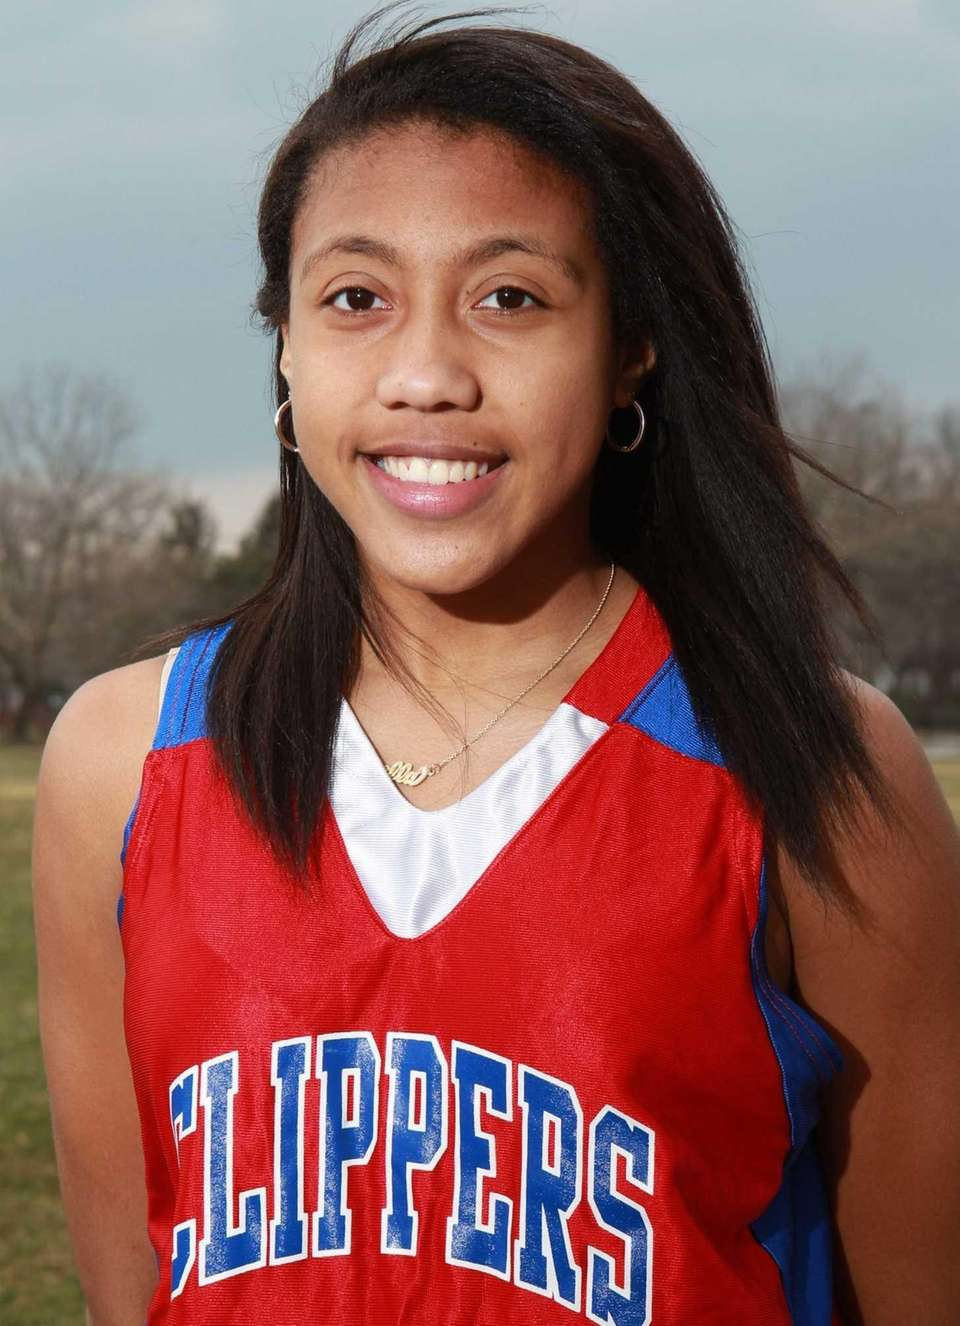 ARELLA GUIRANTES Bellport, Forward/Guard, Sophomore The 5-10 Guirantes